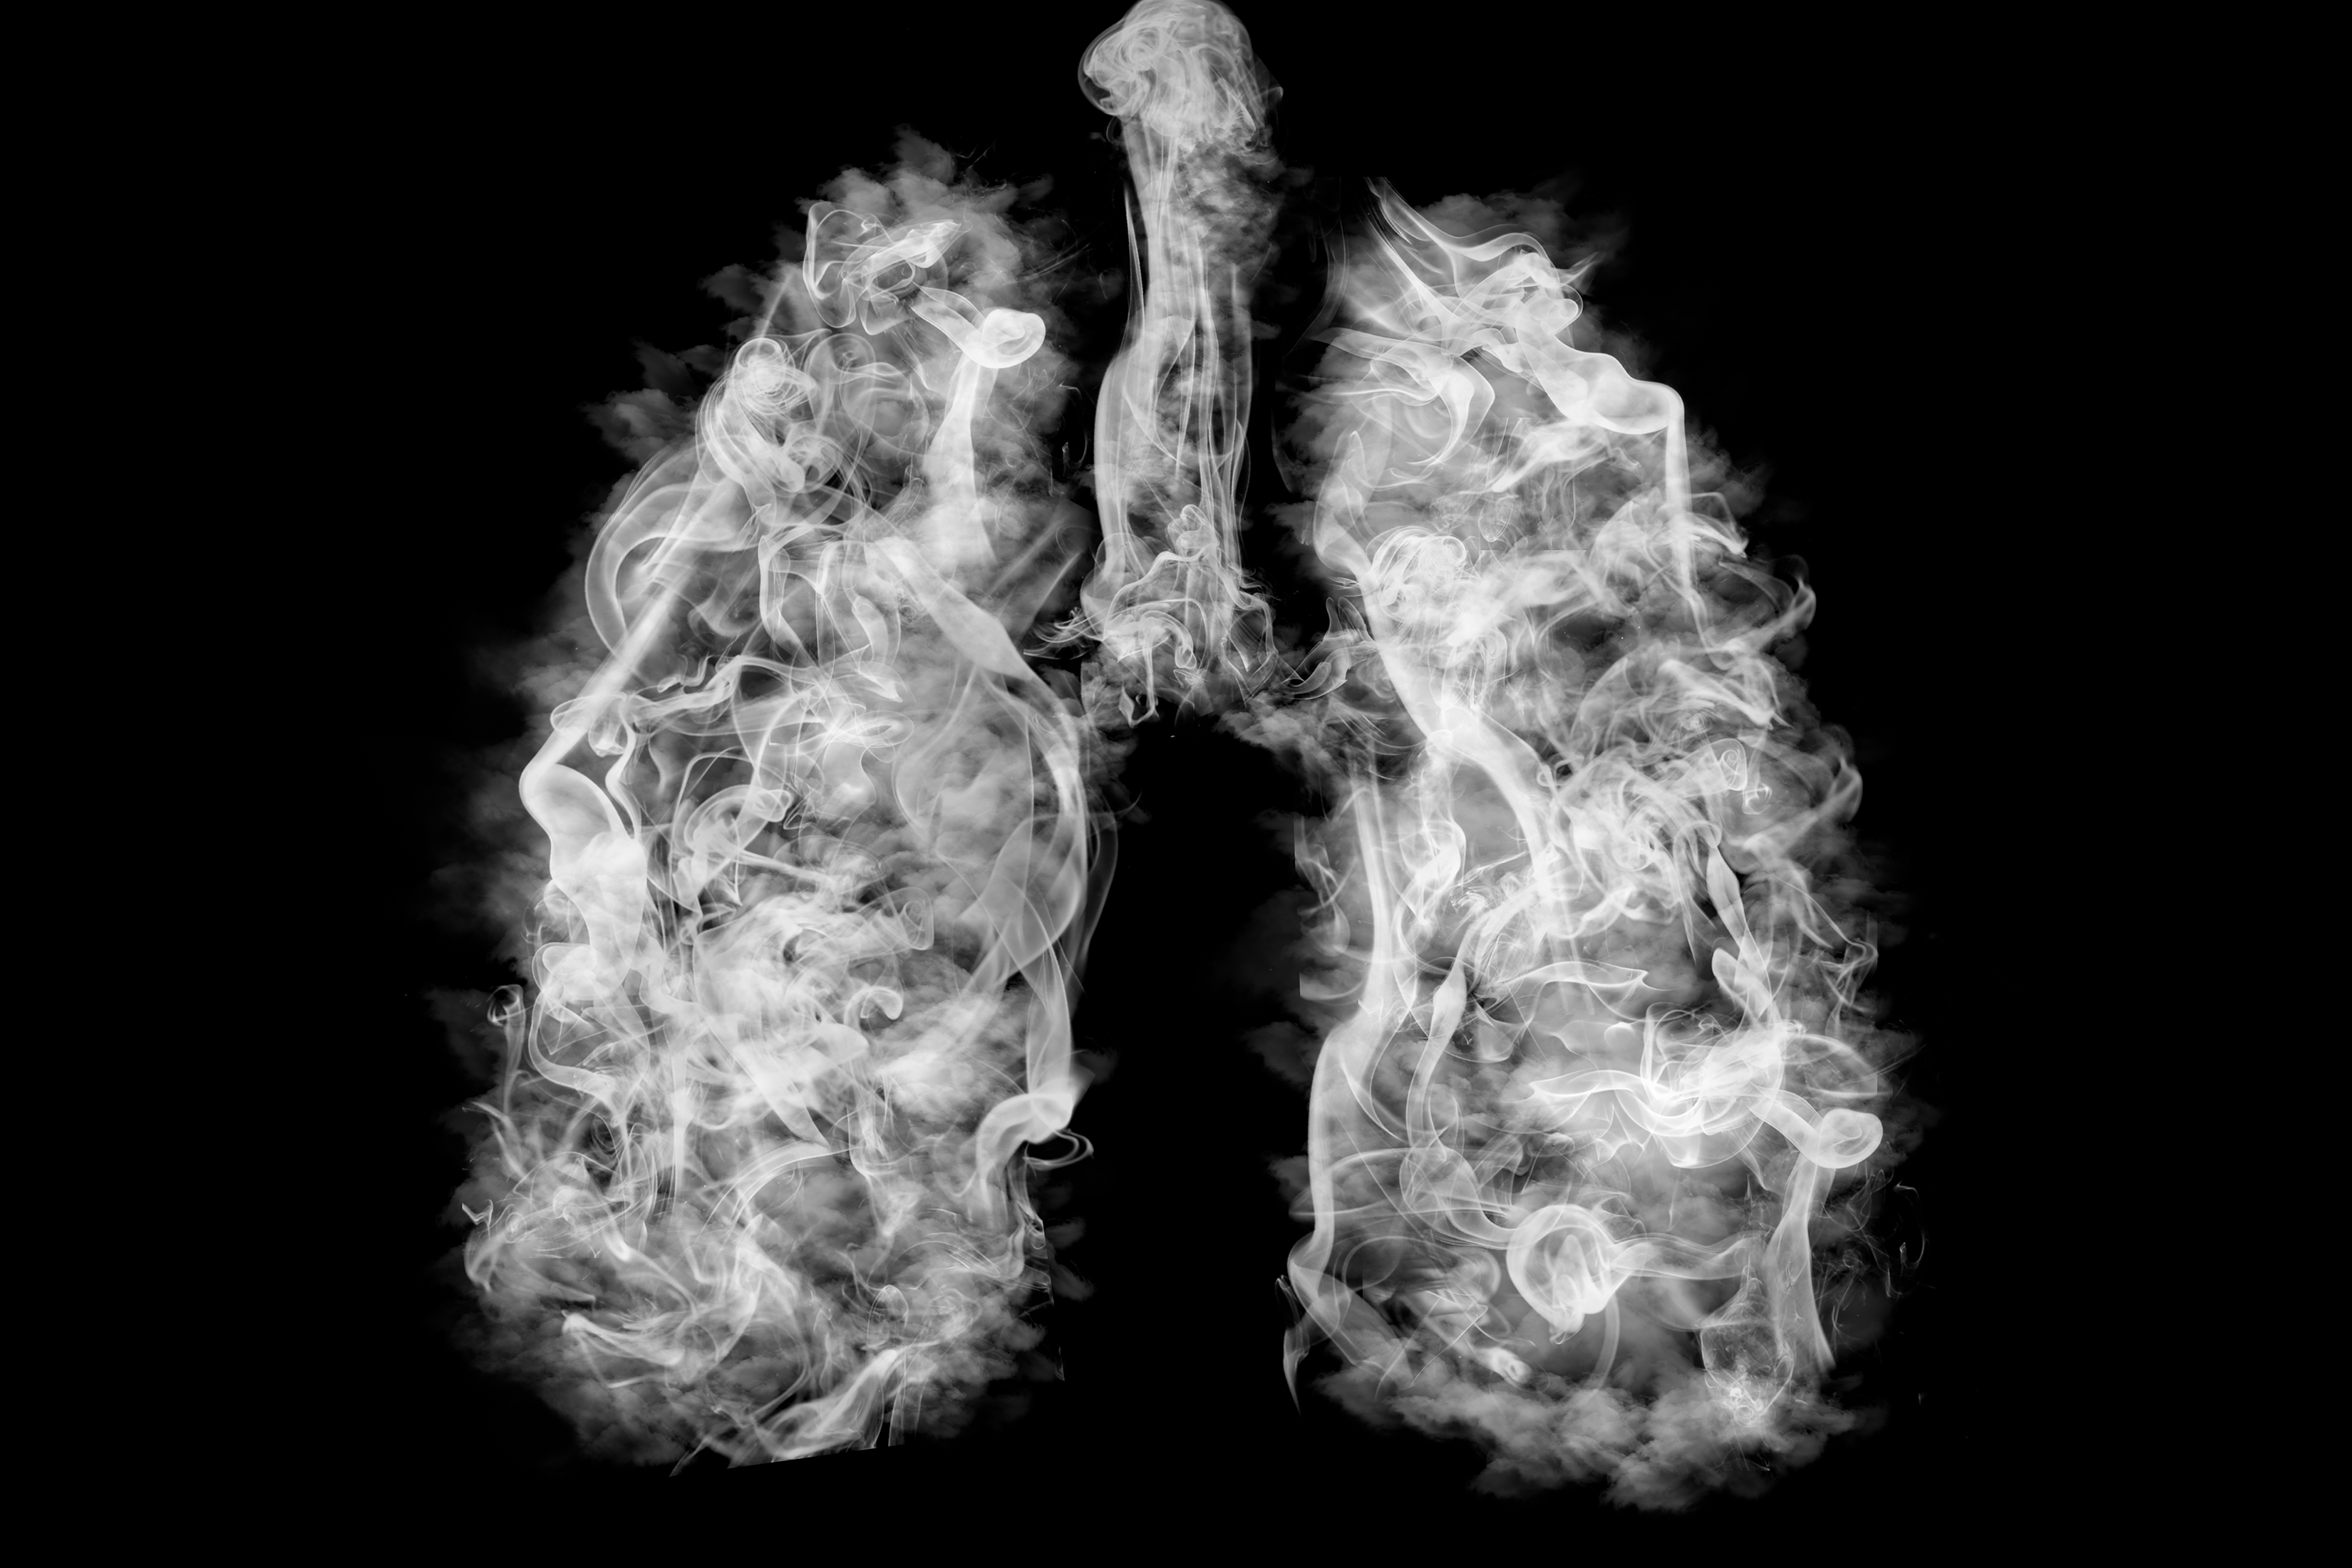 Lungs filled with tobacco smoke signifying how smoking causes lung damage